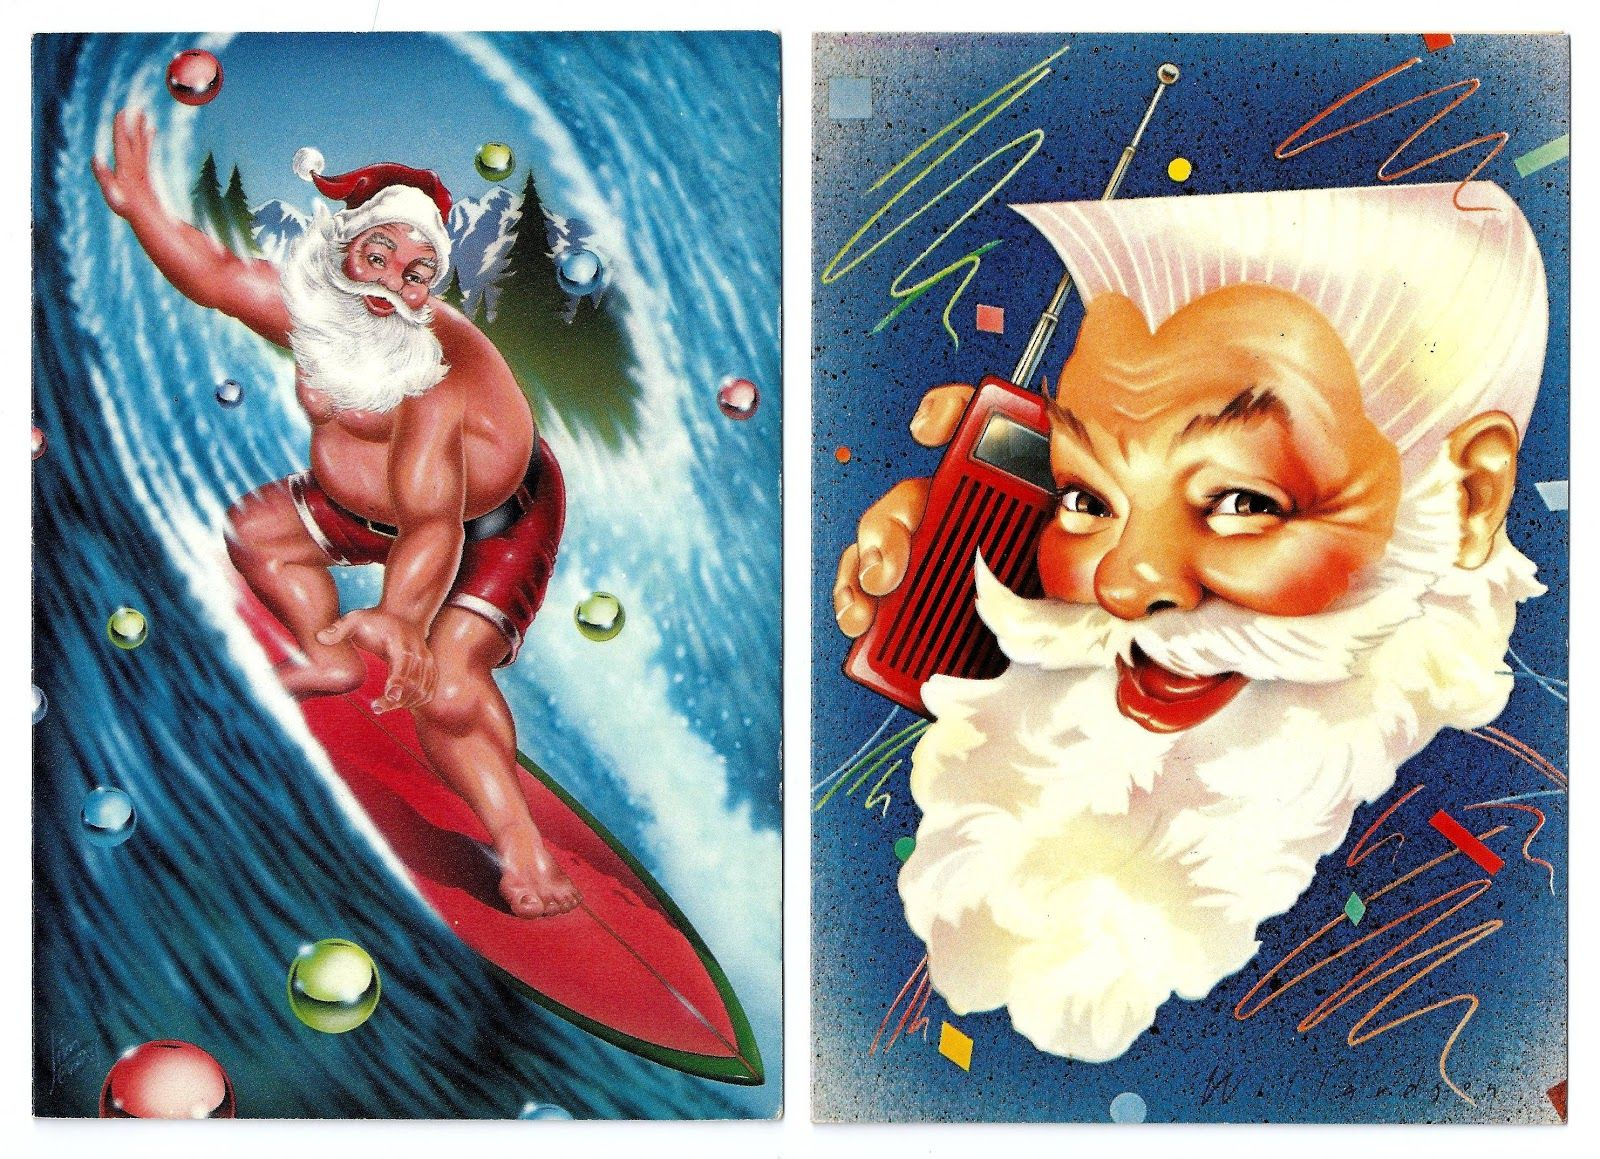 Christmas cards from paper moon graphics santa surfing santa christmas cards from paper moon graphics santa surfing santa with a crewcut kristyandbryce Image collections